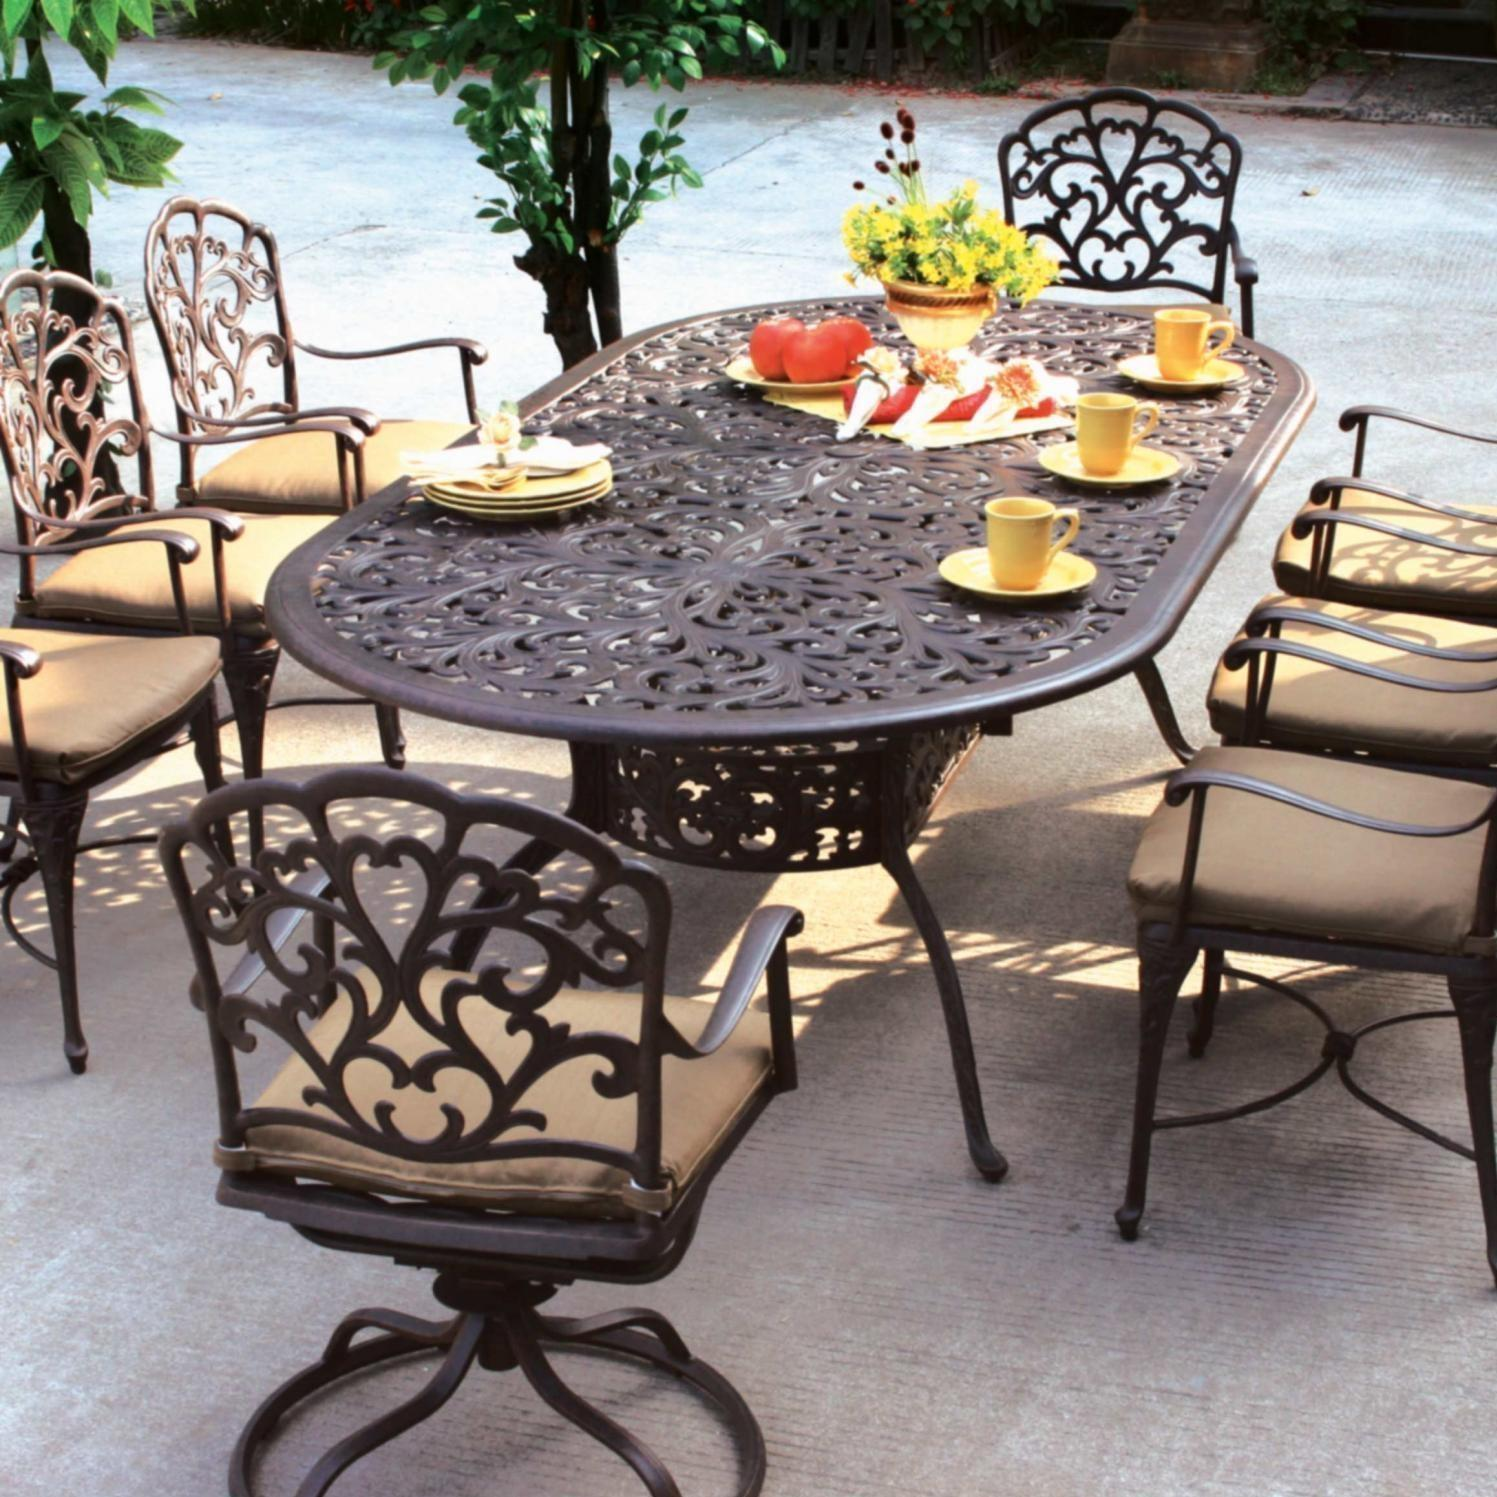 Patio Dining Sets Discount Pictures